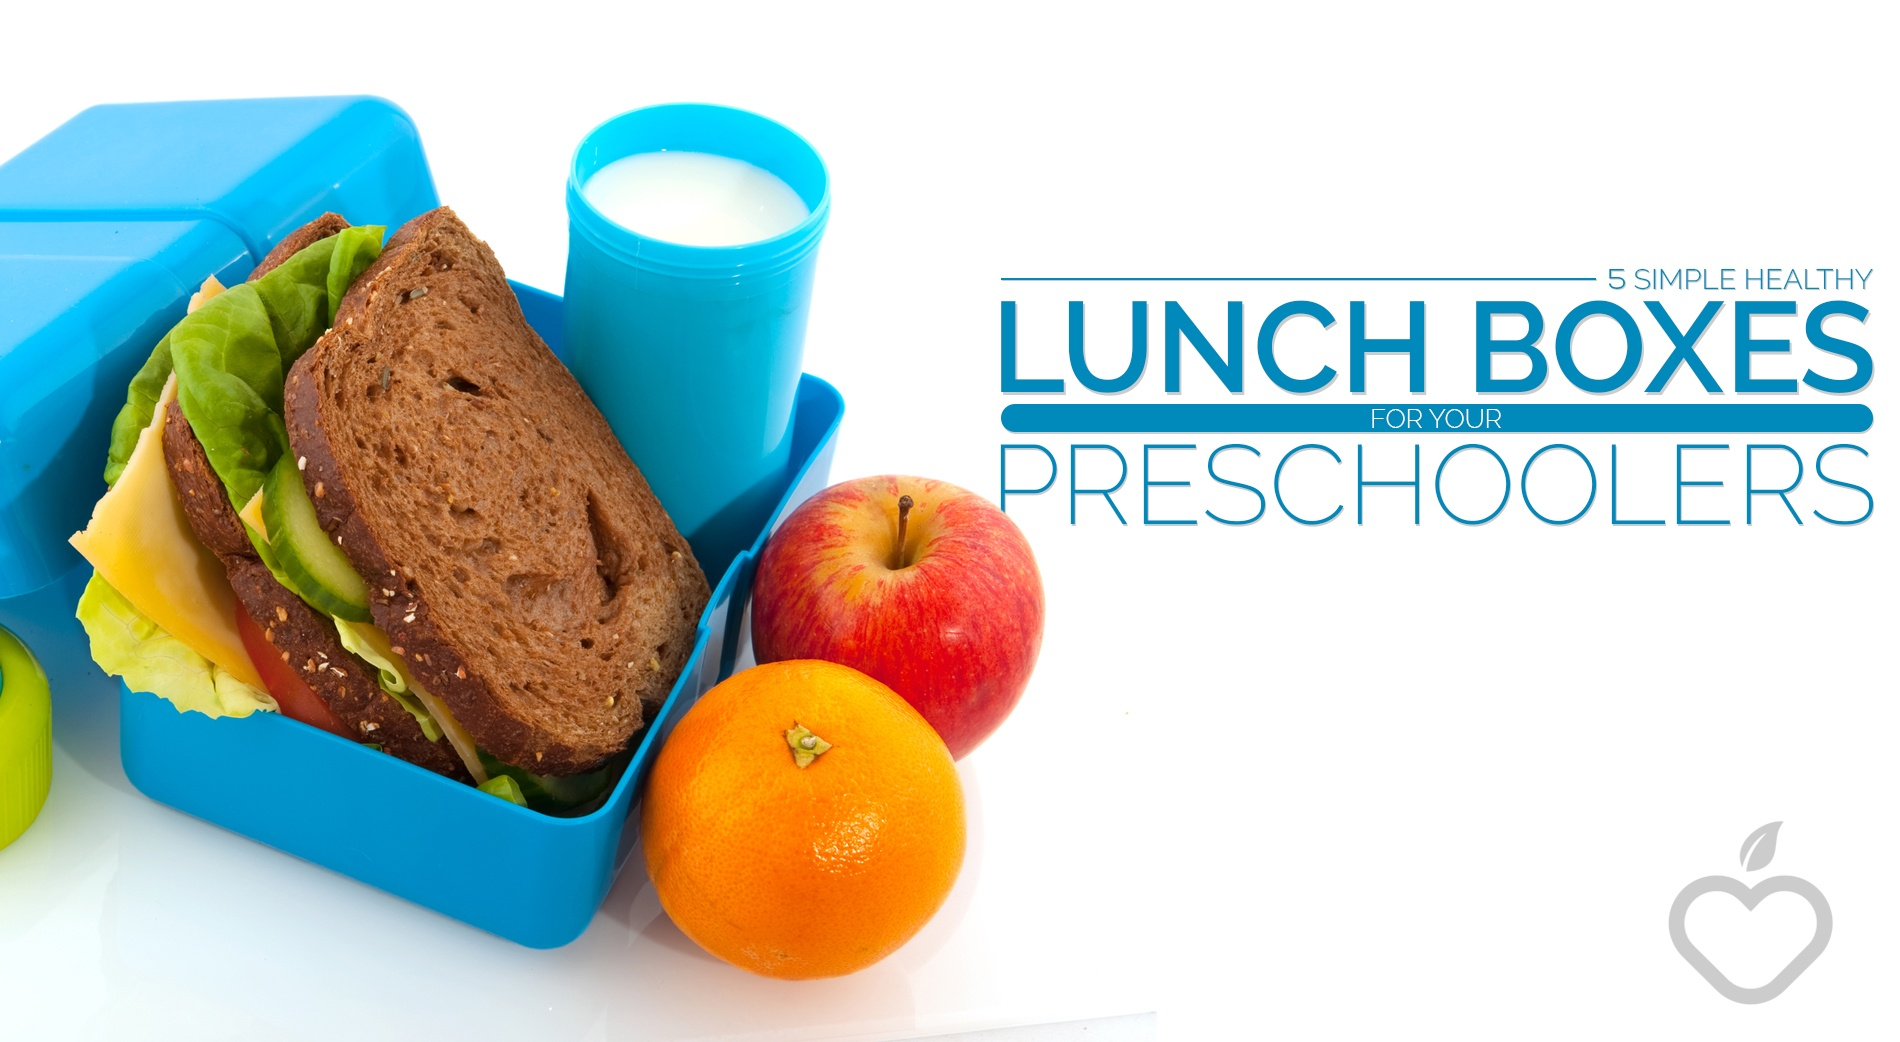 Lunch Boxes Image Design 1 - 5 Simple Healthy Lunch Boxes For Your Preschoolers